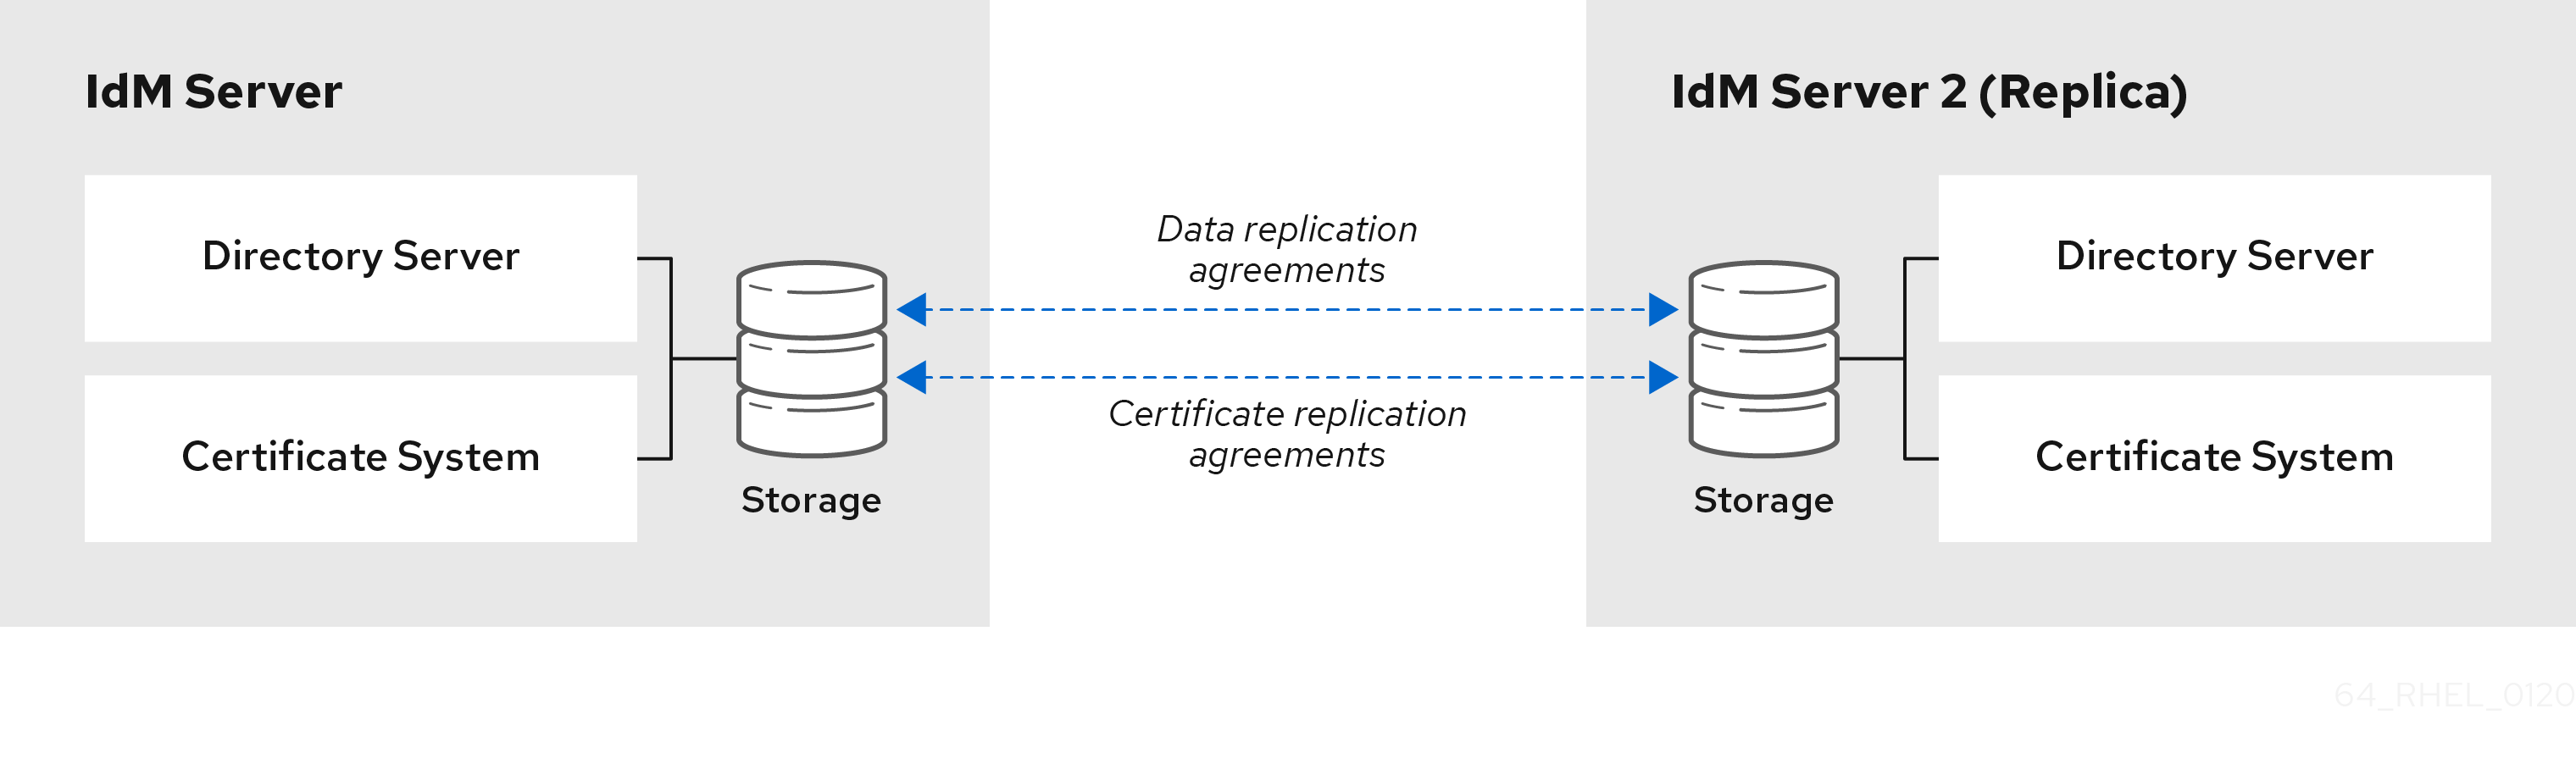 An image of two servers with two sets of replication agreements between them: a data replication agreement that pertains to their Directory Server database and a certificate replication agreement that pertains to their Certificate System data